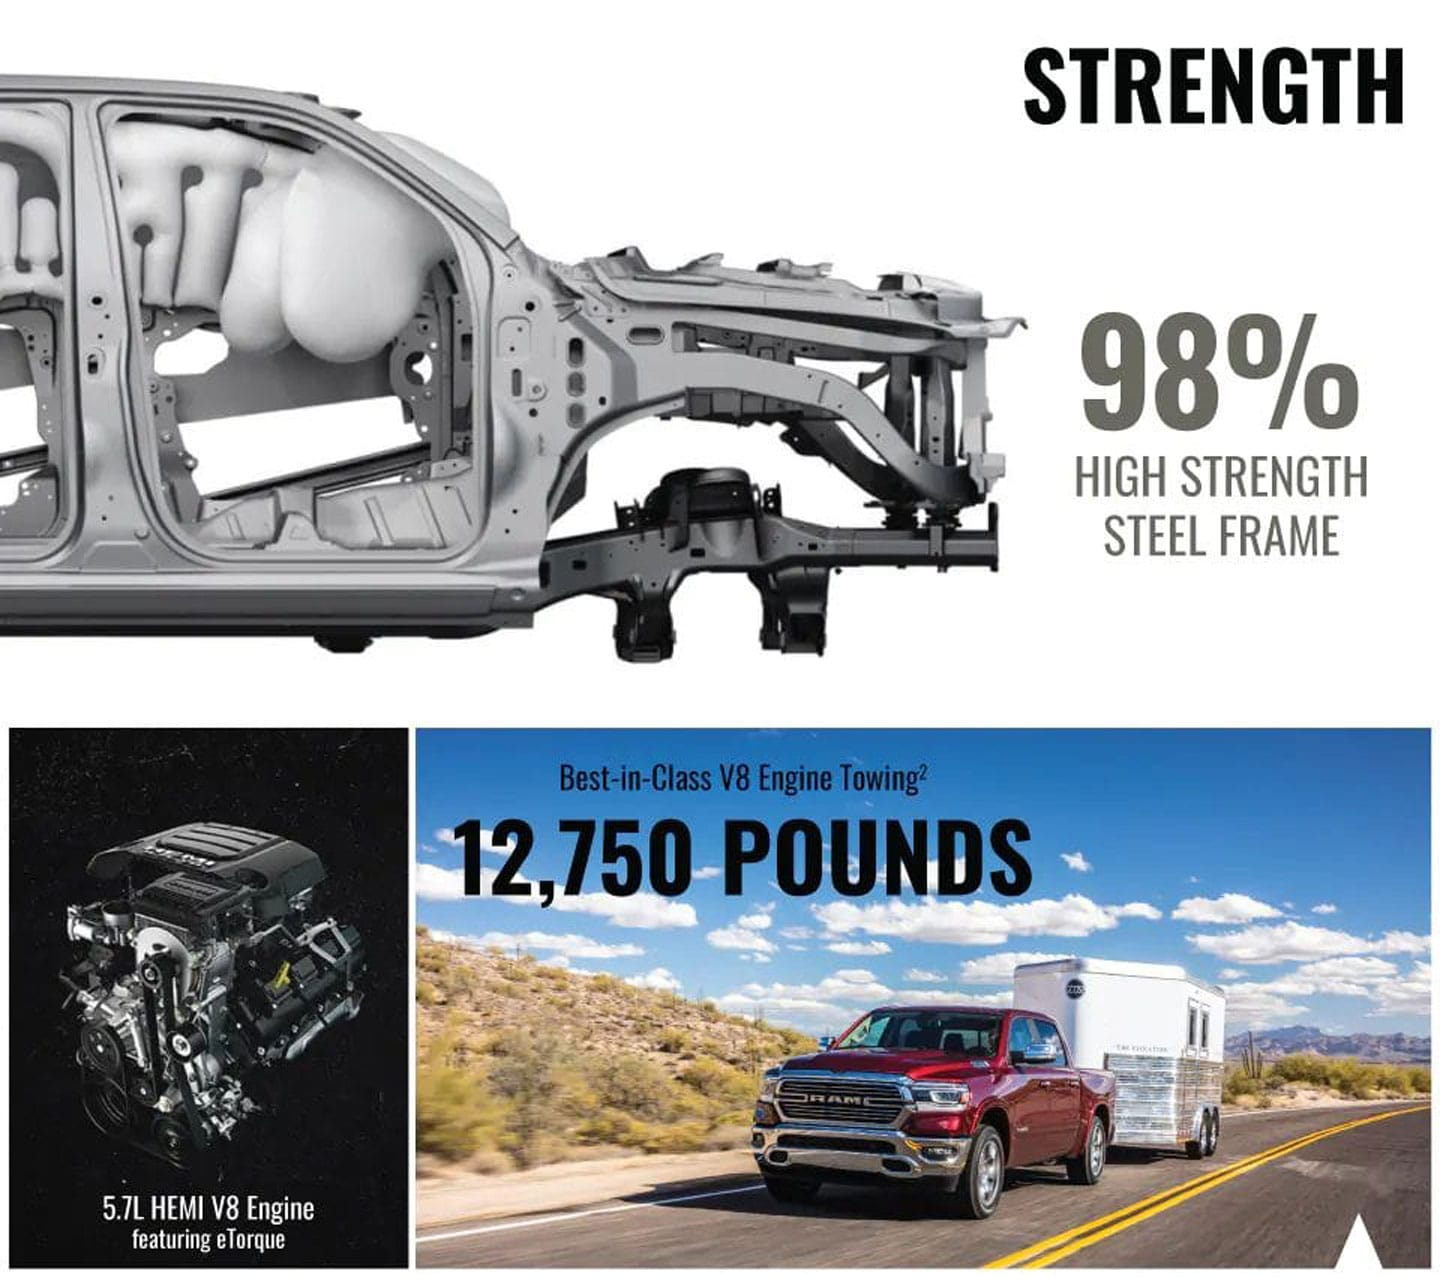 vehicle strength